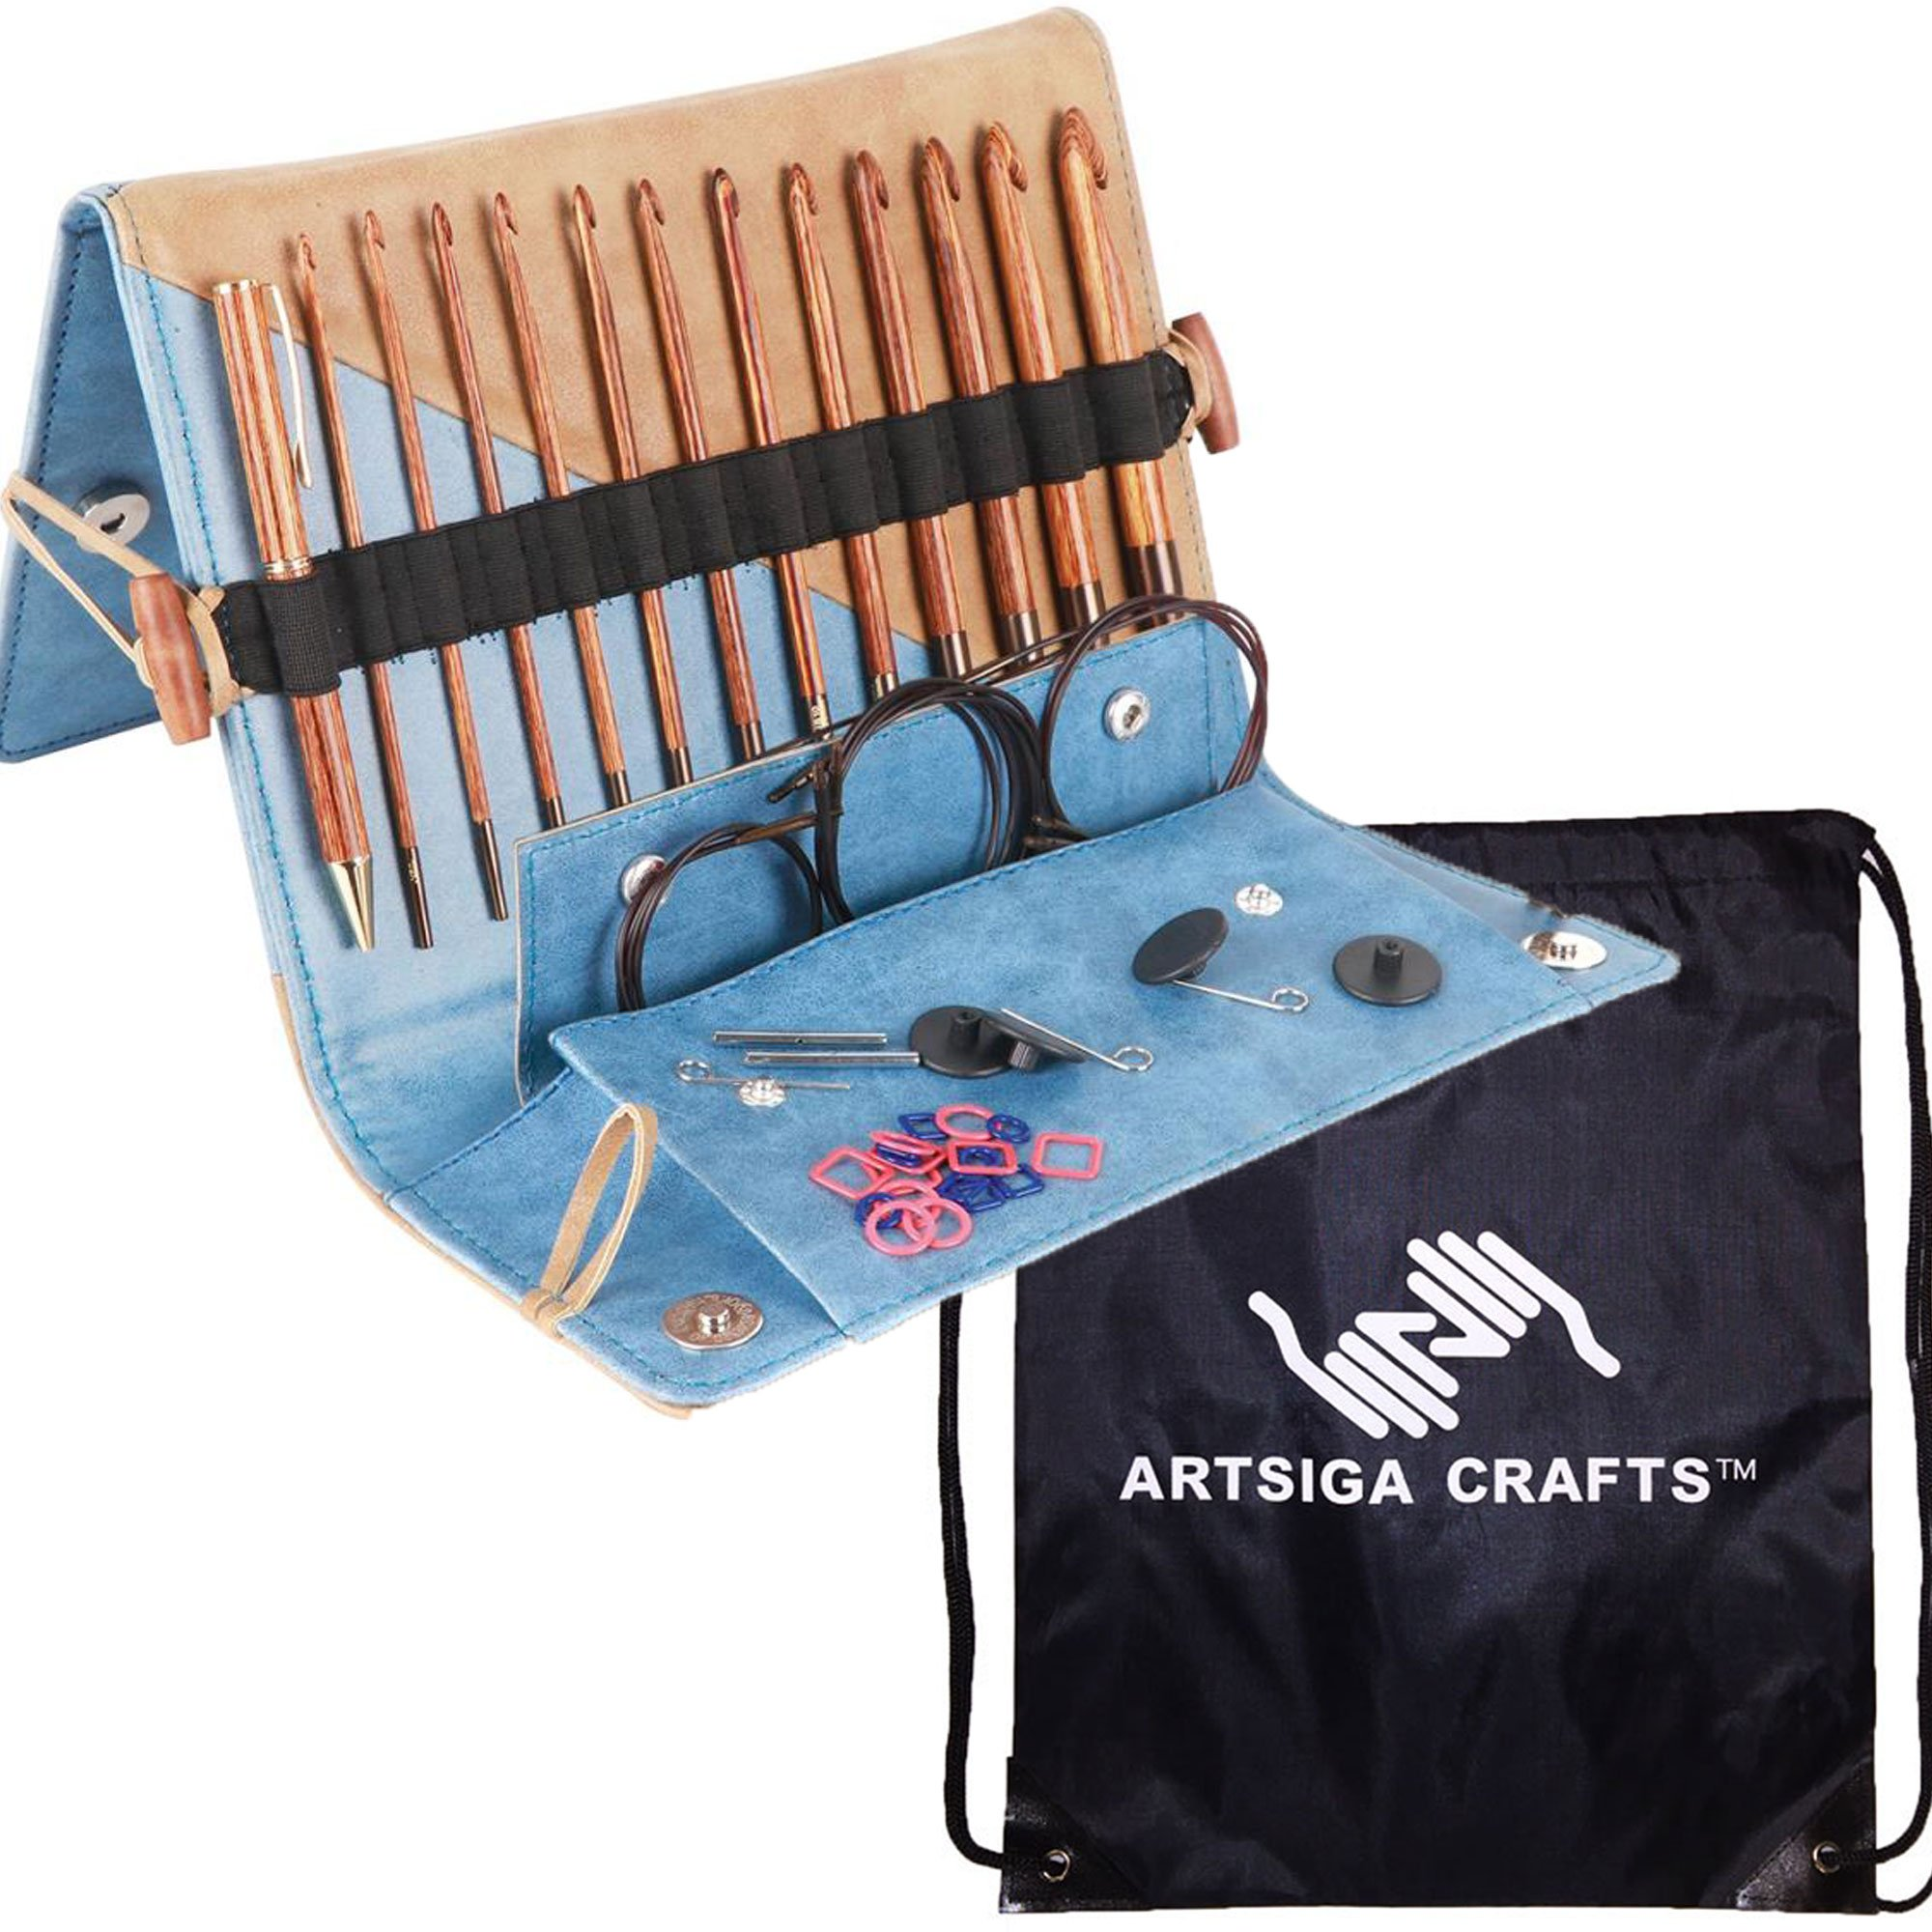 Knitter's Pride Knitting Needles Tunisian Crochet Hook Ginger Set Bundle with 1 Artsiga Crafts Project Bag